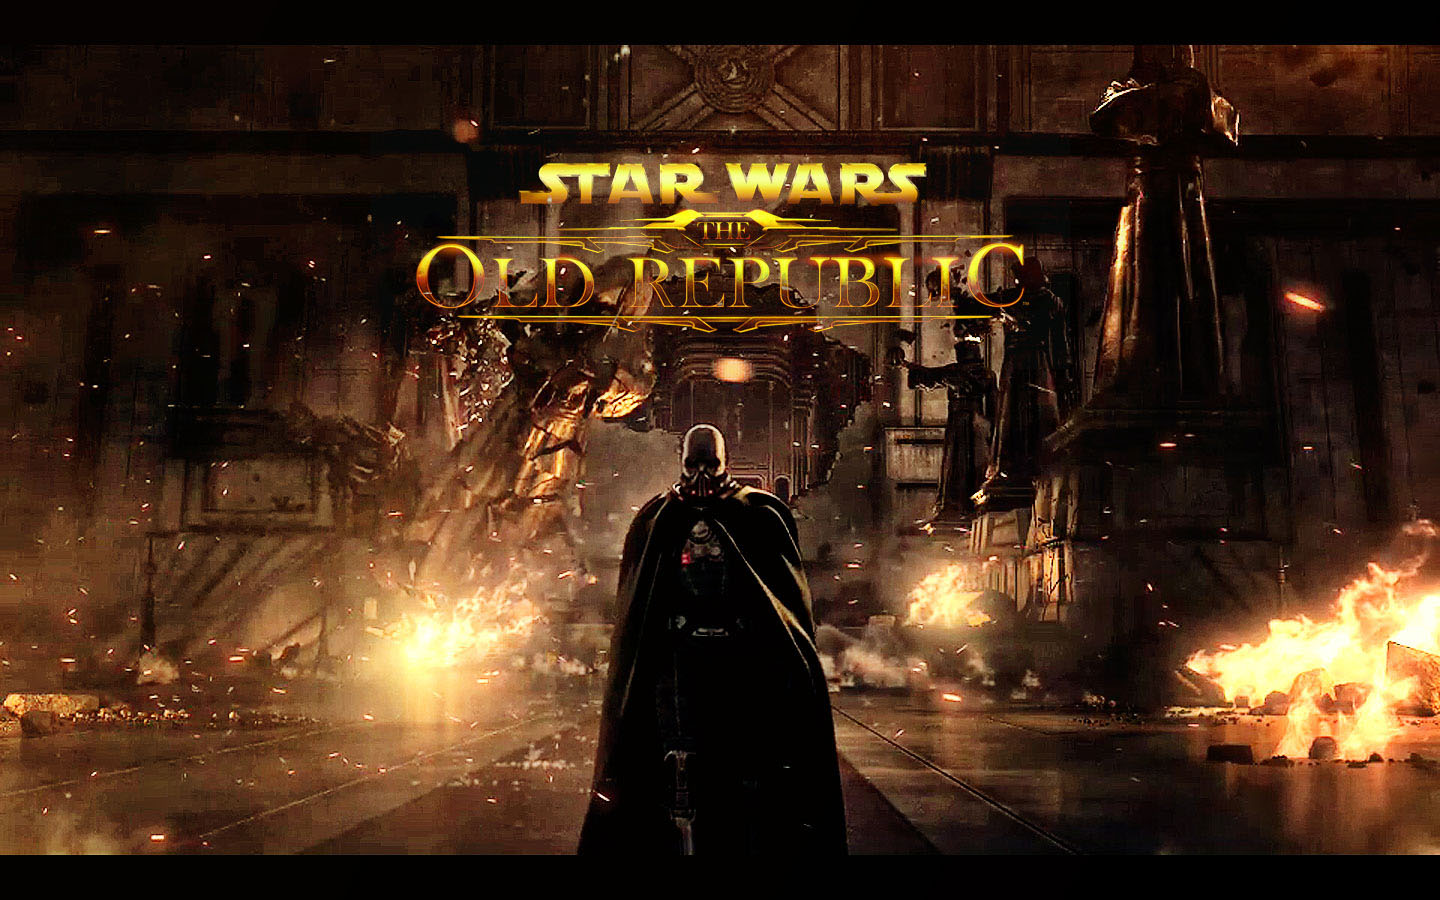 Star Wars the Old Republic HD images